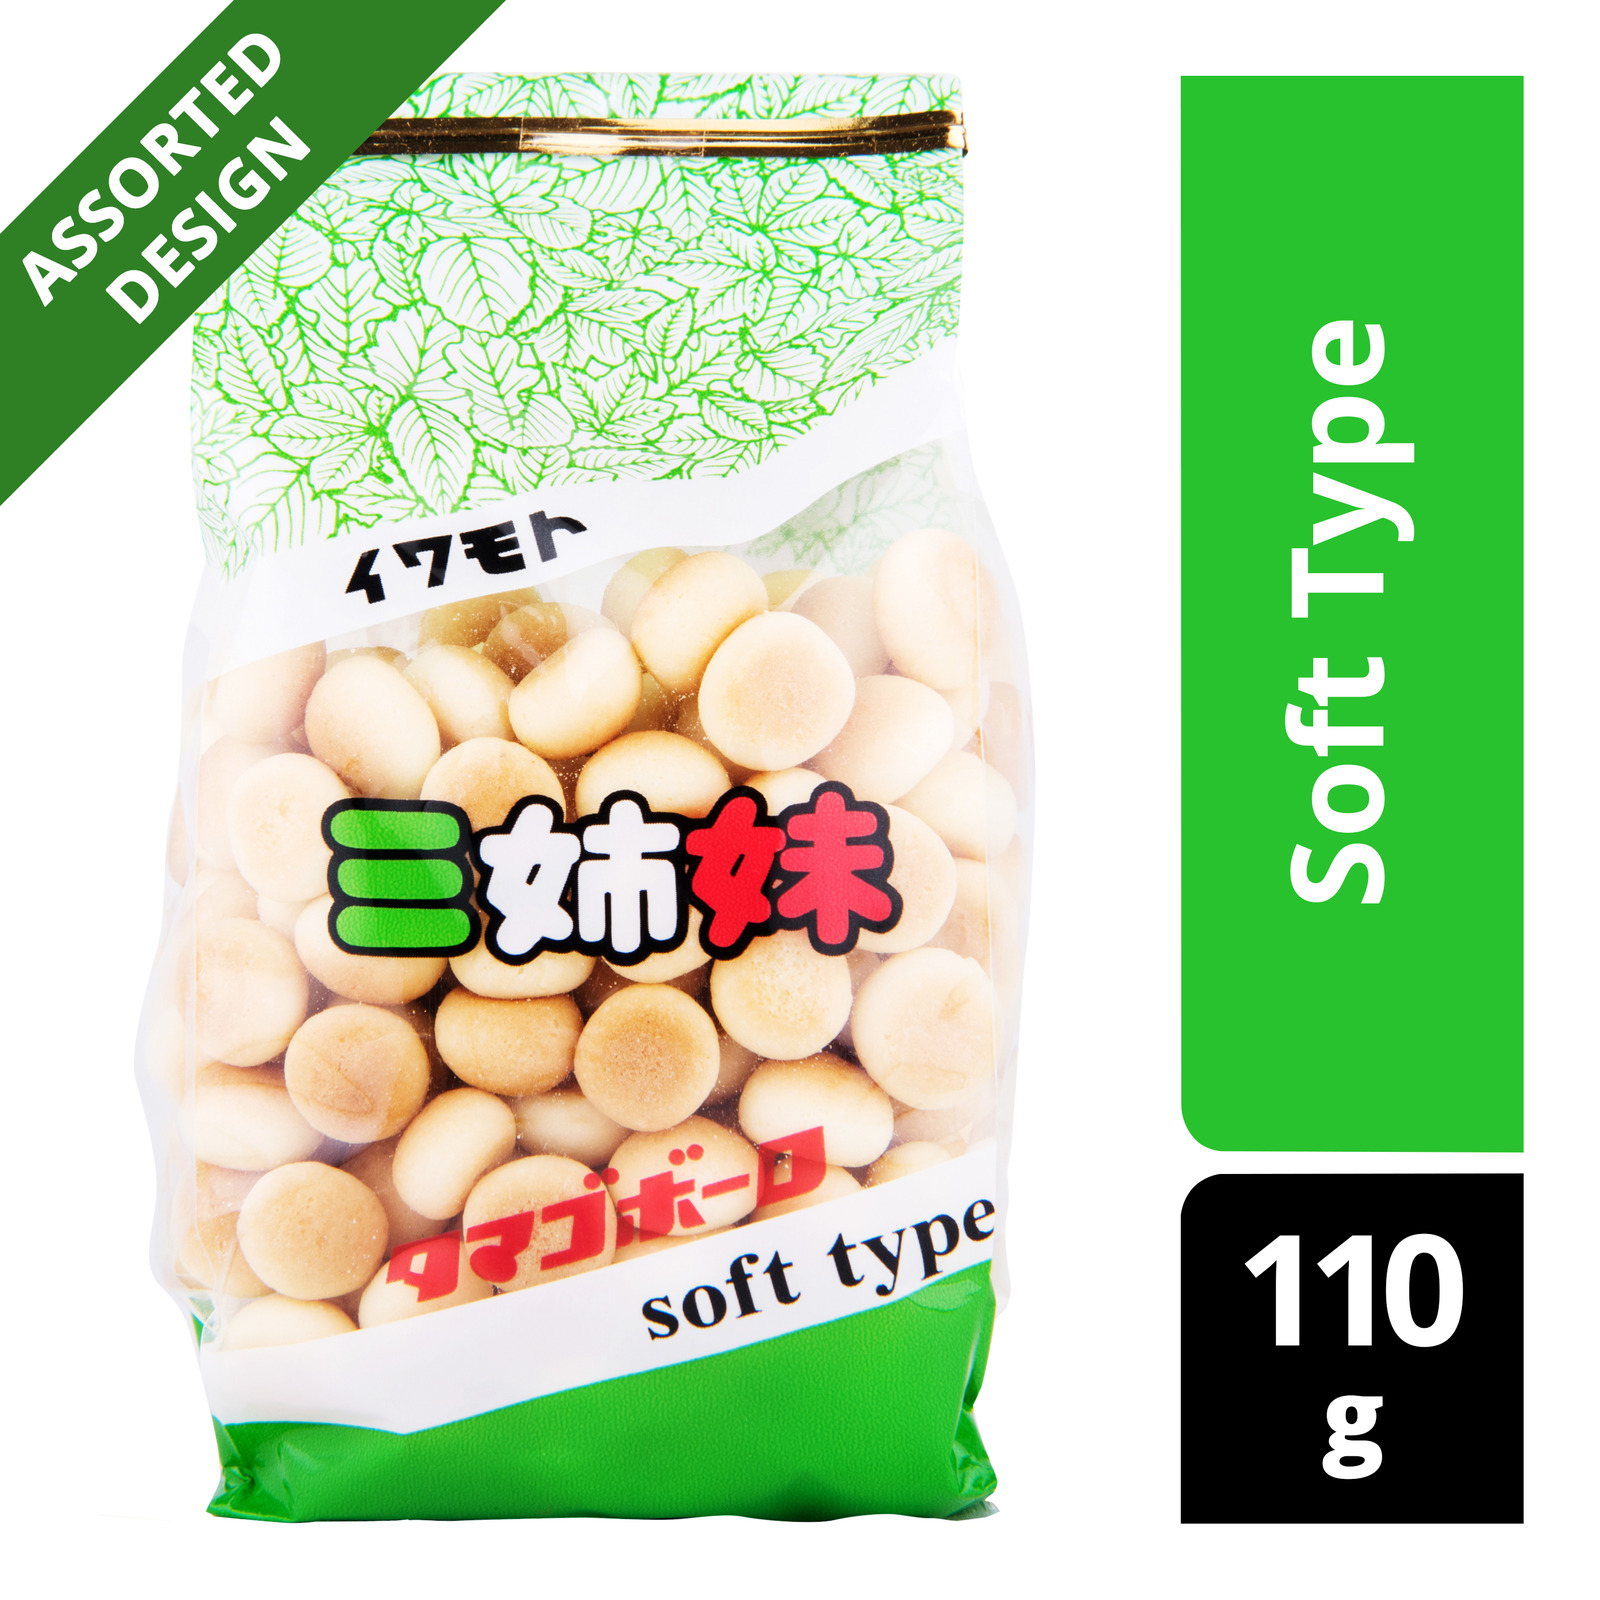 Iwamoto 3 Sisters Egg Ball Biscuit - Soft Type (Assorted)